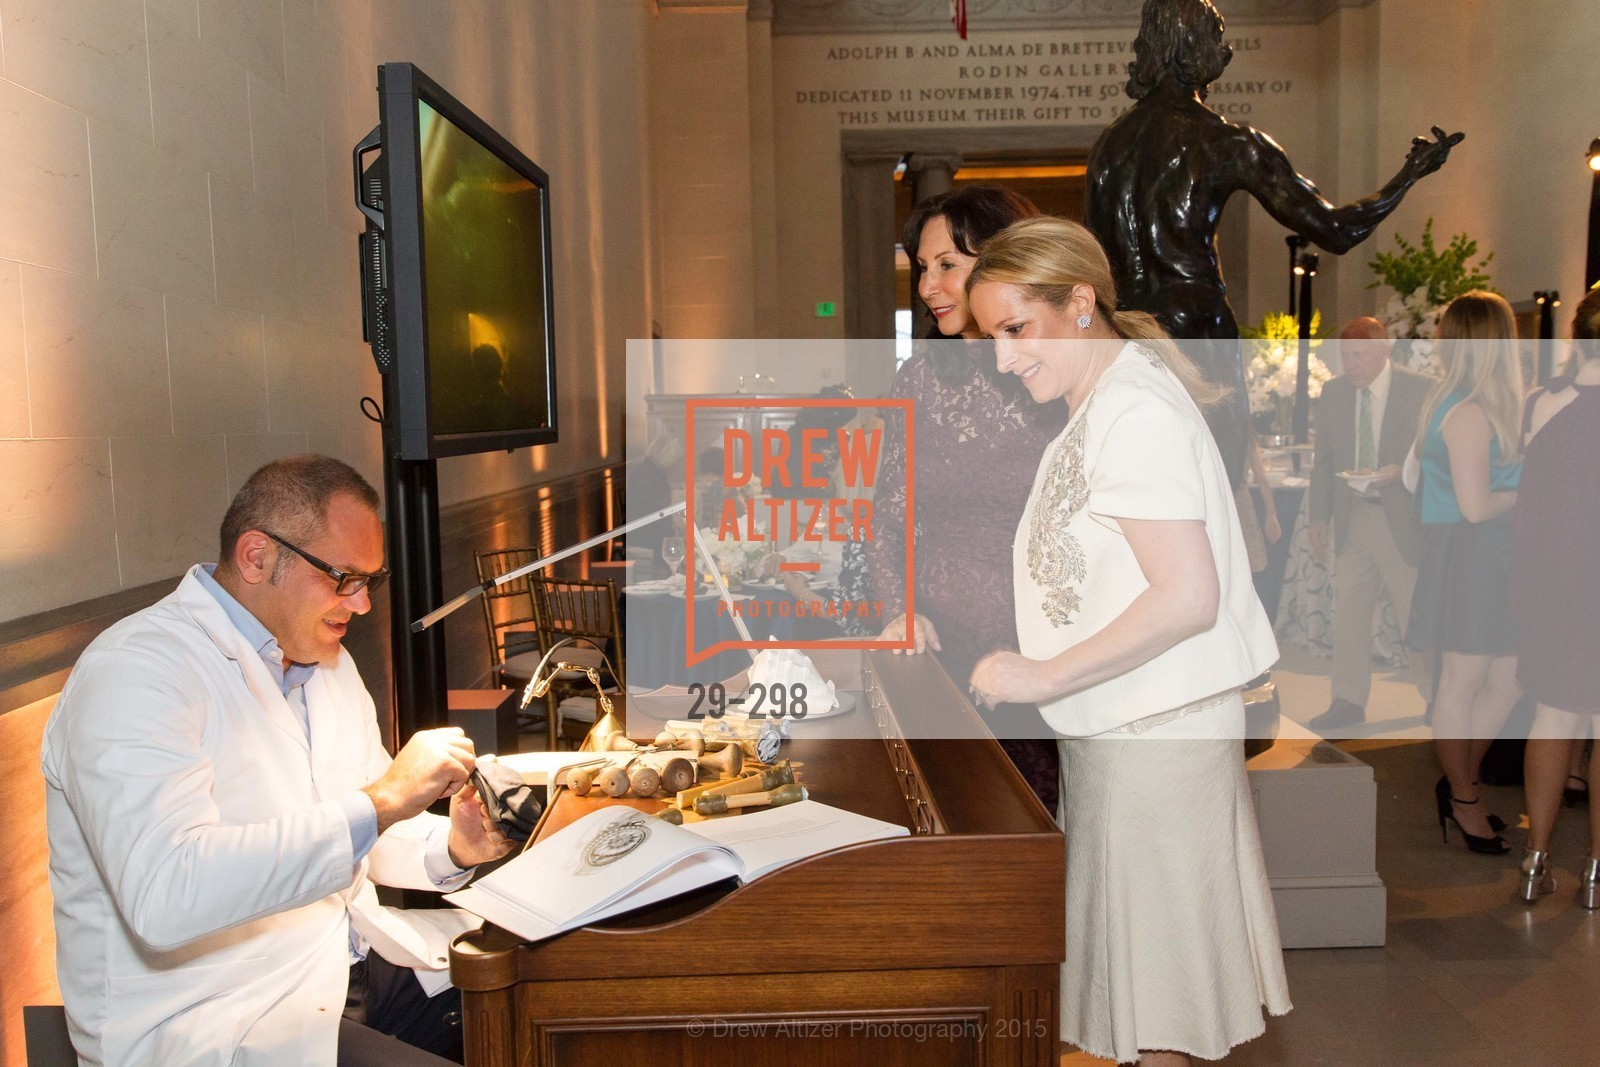 Carolyn Chandler, Lorre Erlick, Breguet and Ancient Luxury Donor Opening Reception at Legion of Honor, Legion of Honor, September 17th, 2015,Drew Altizer, Drew Altizer Photography, full-service agency, private events, San Francisco photographer, photographer california